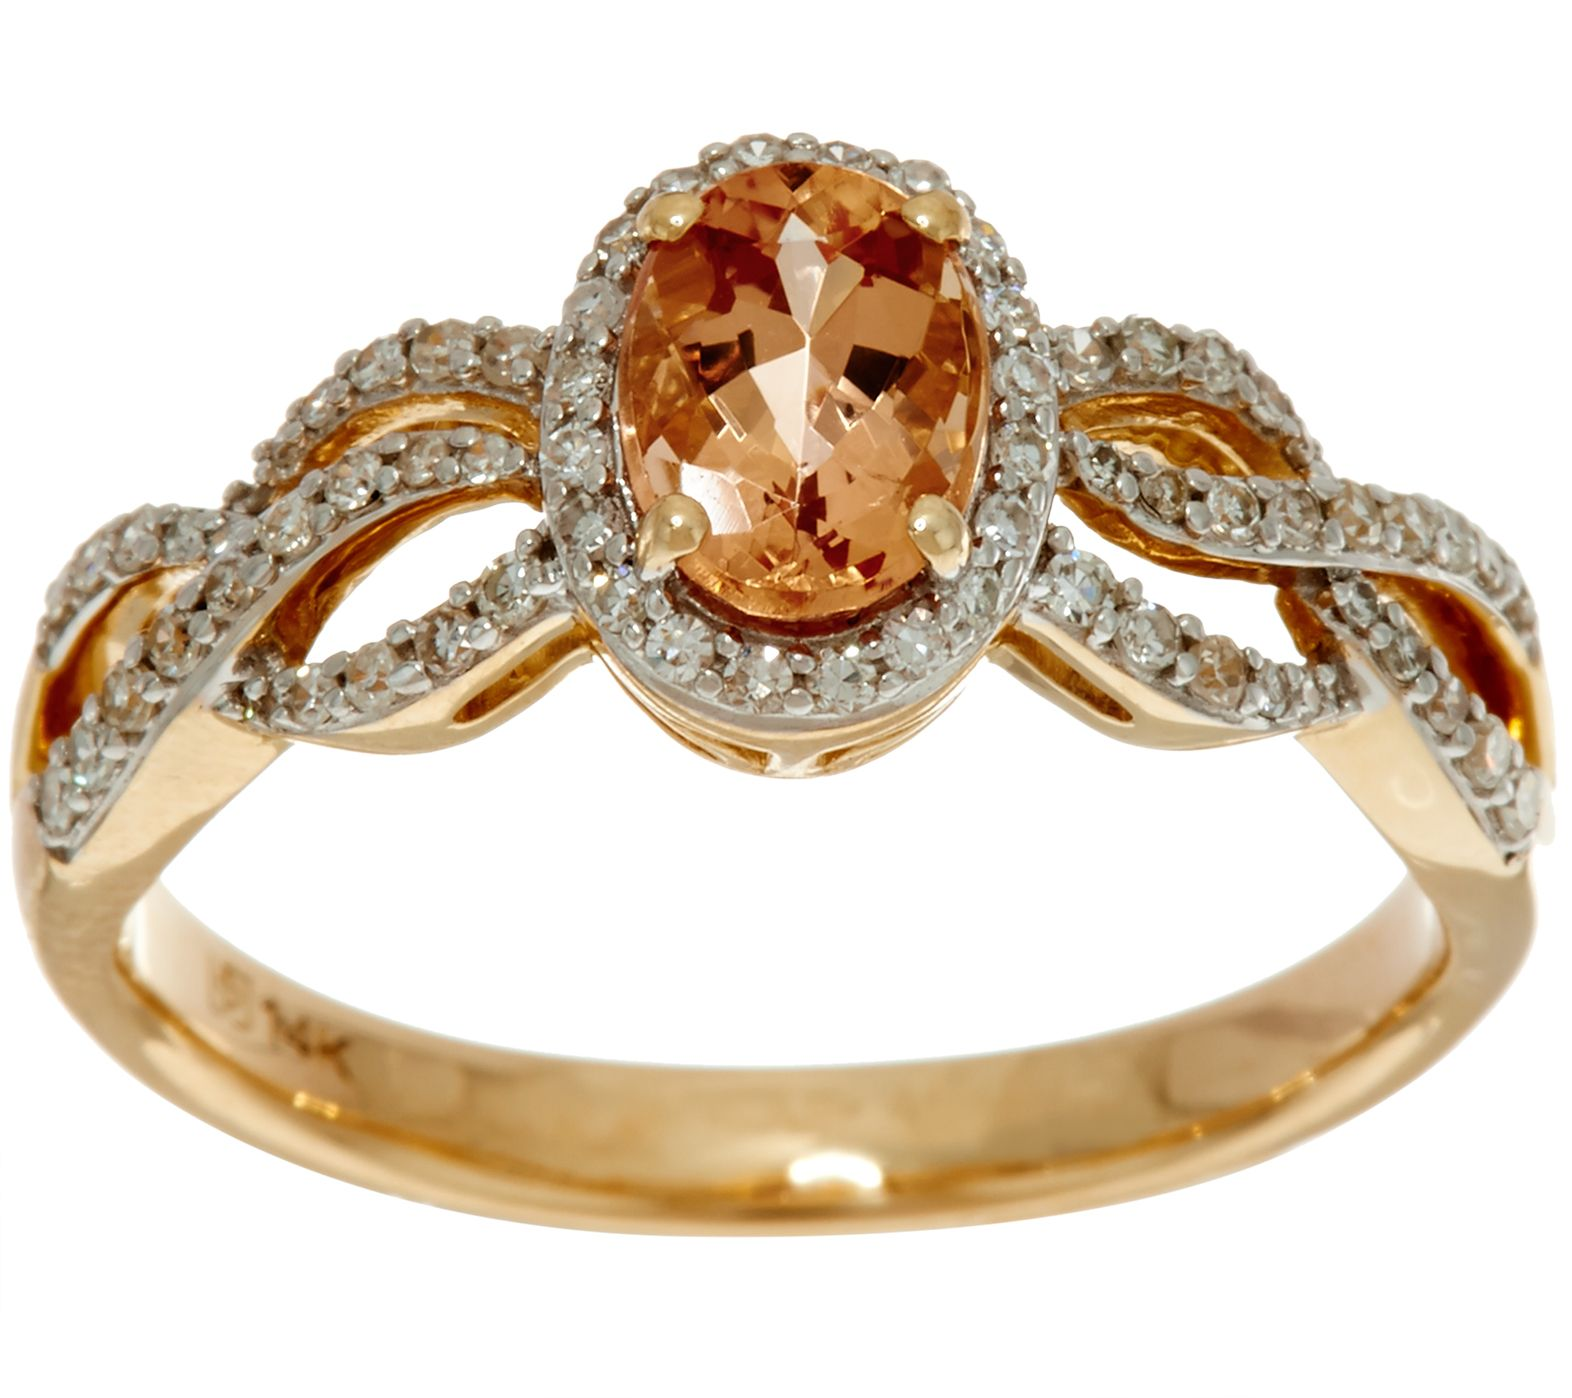 Oval Imperial Topaz & Pave Diamond Ring 14K Gold 0 75 ct Page 1